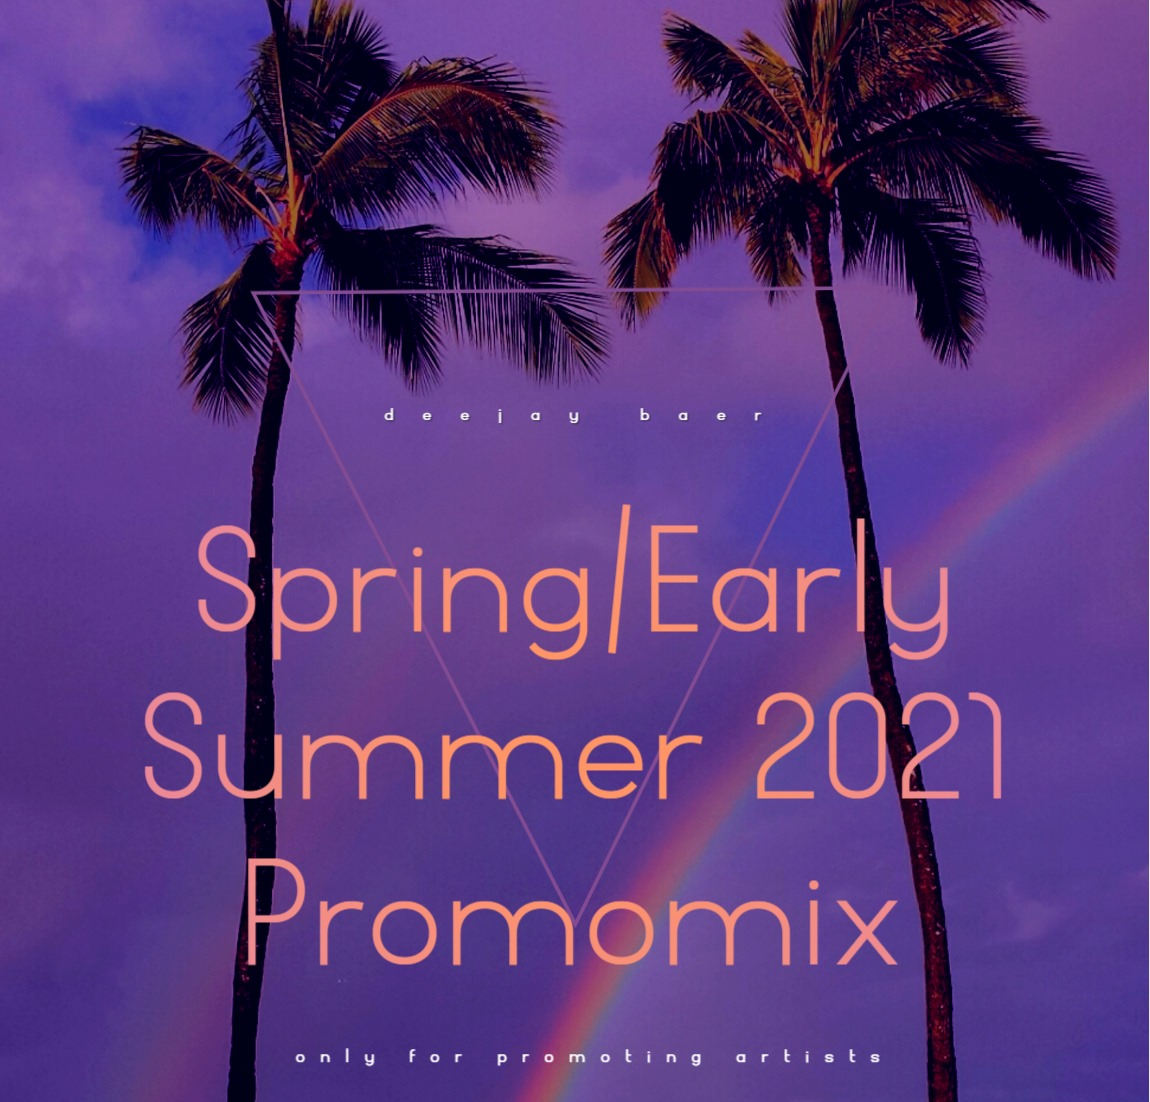 Spring / Early Summer 2021 Promomix